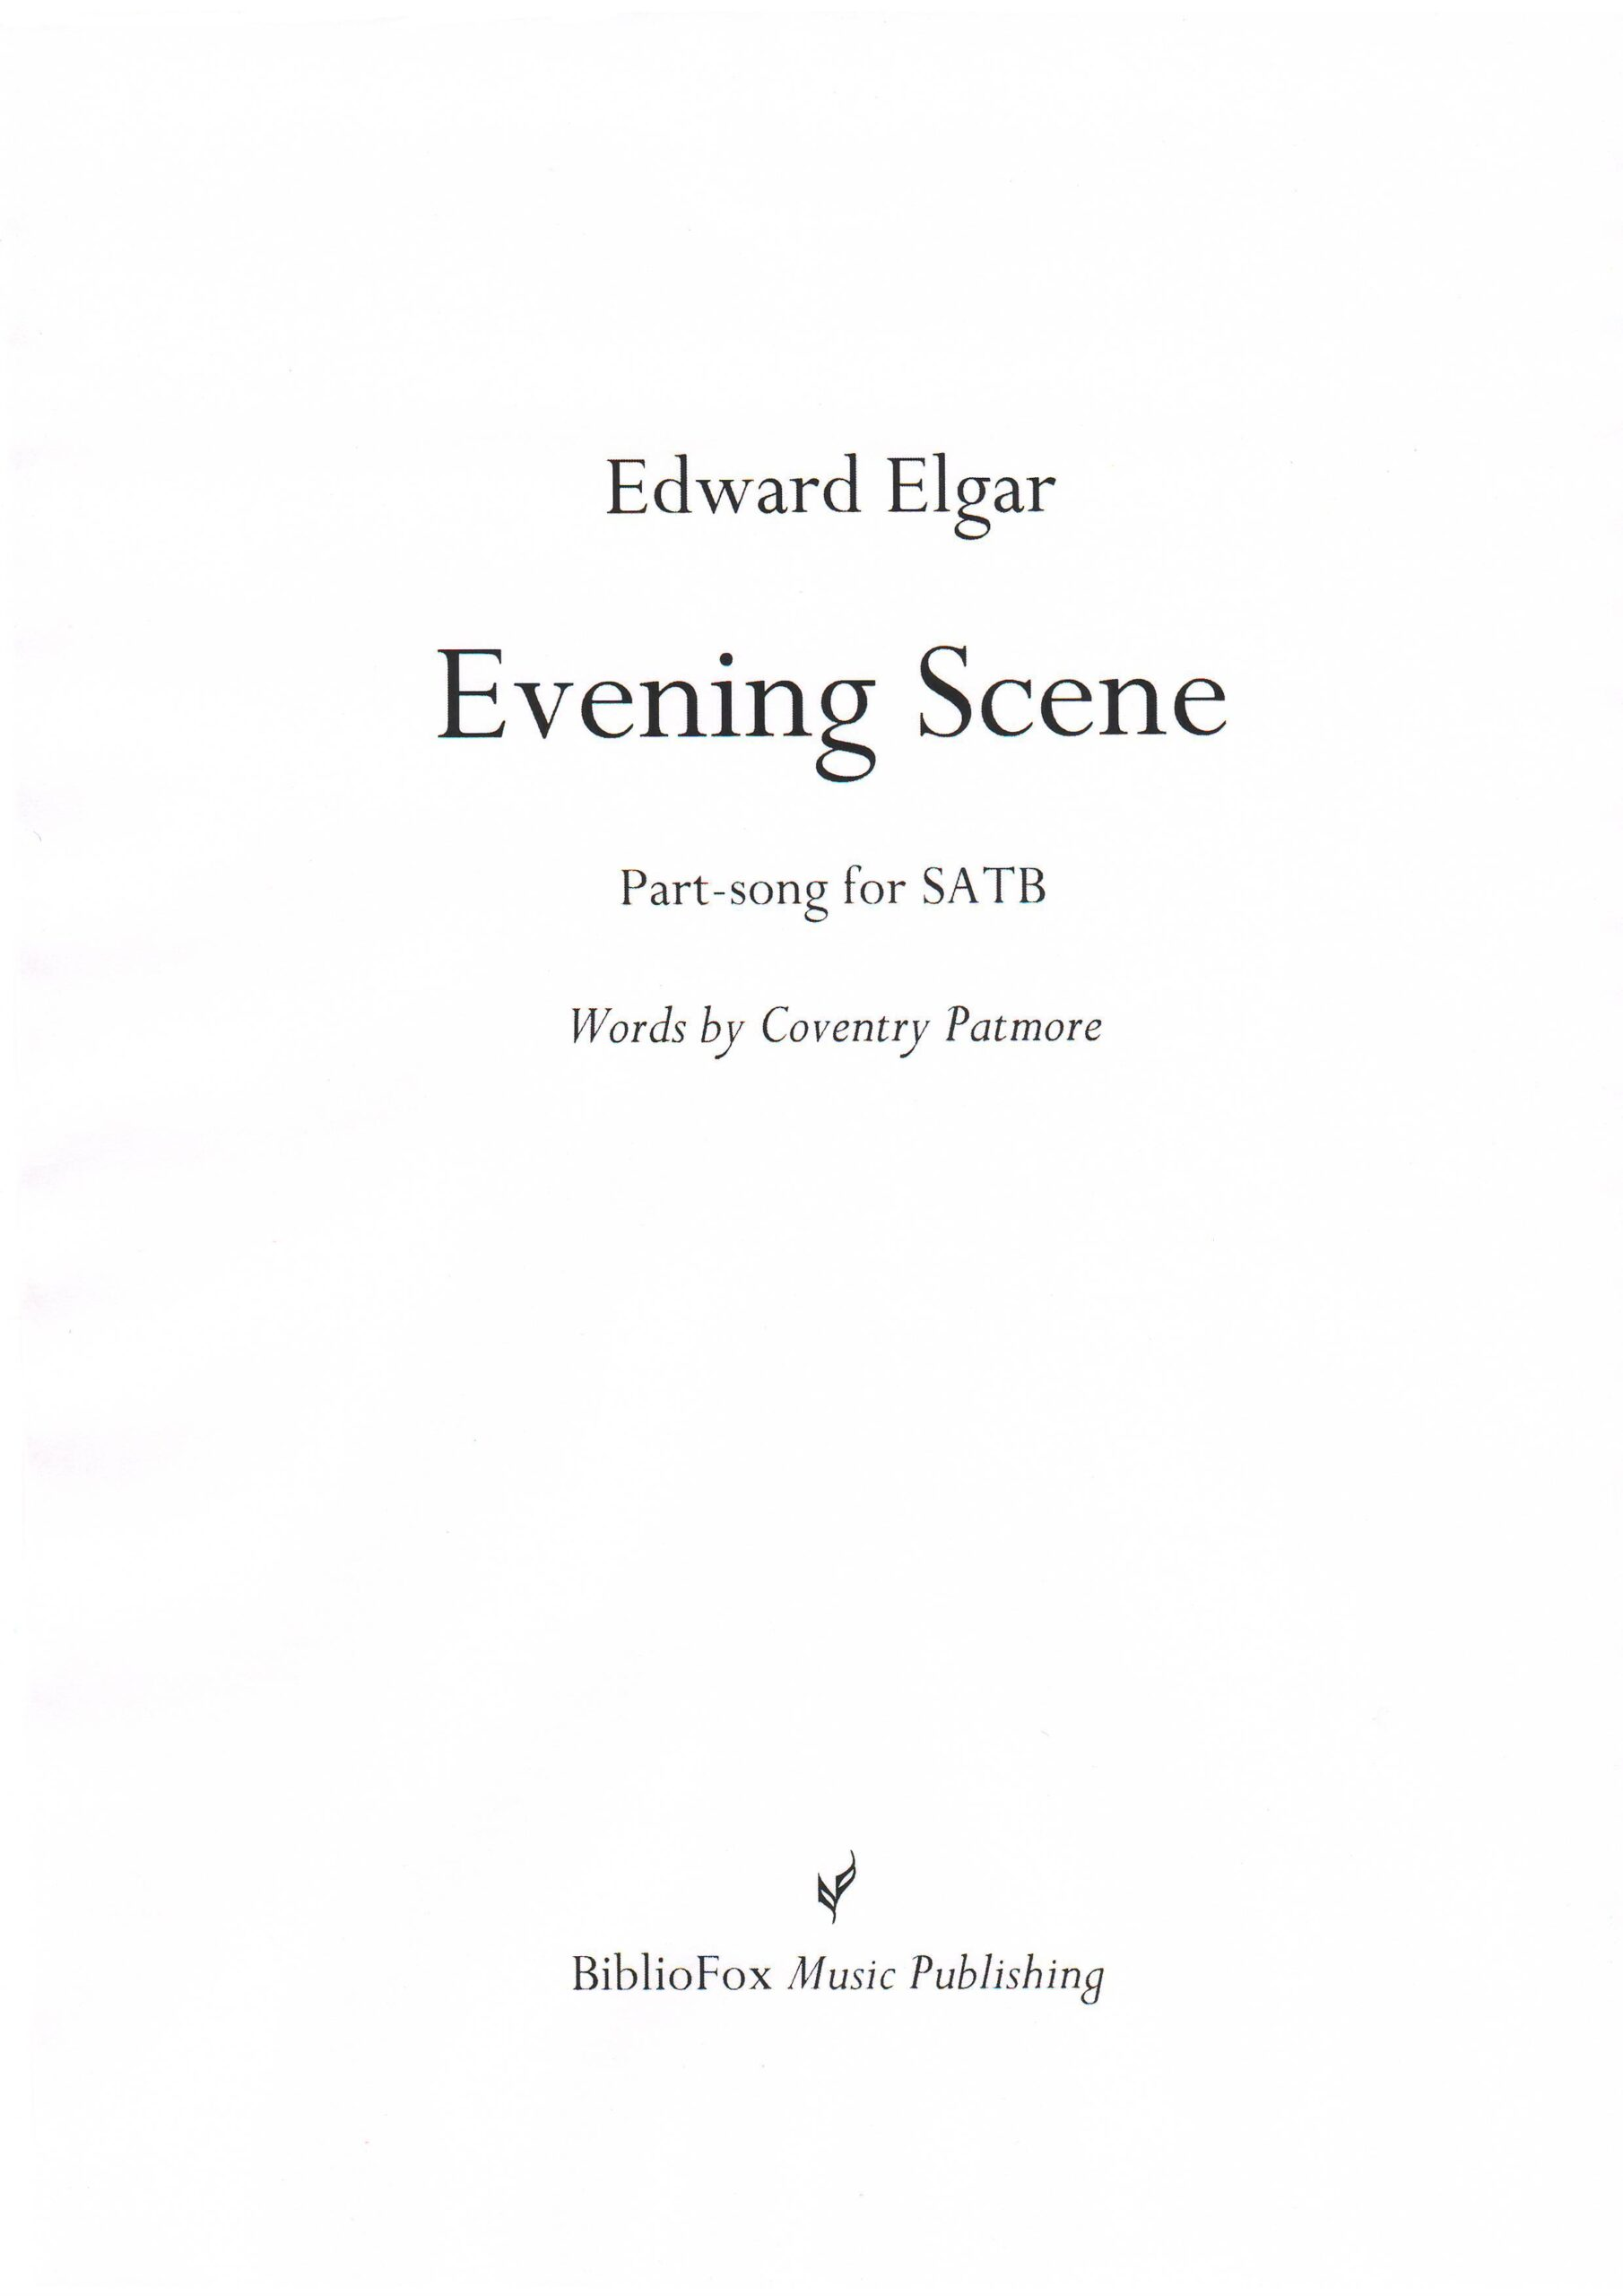 Cover page of Elgar Evening Scene